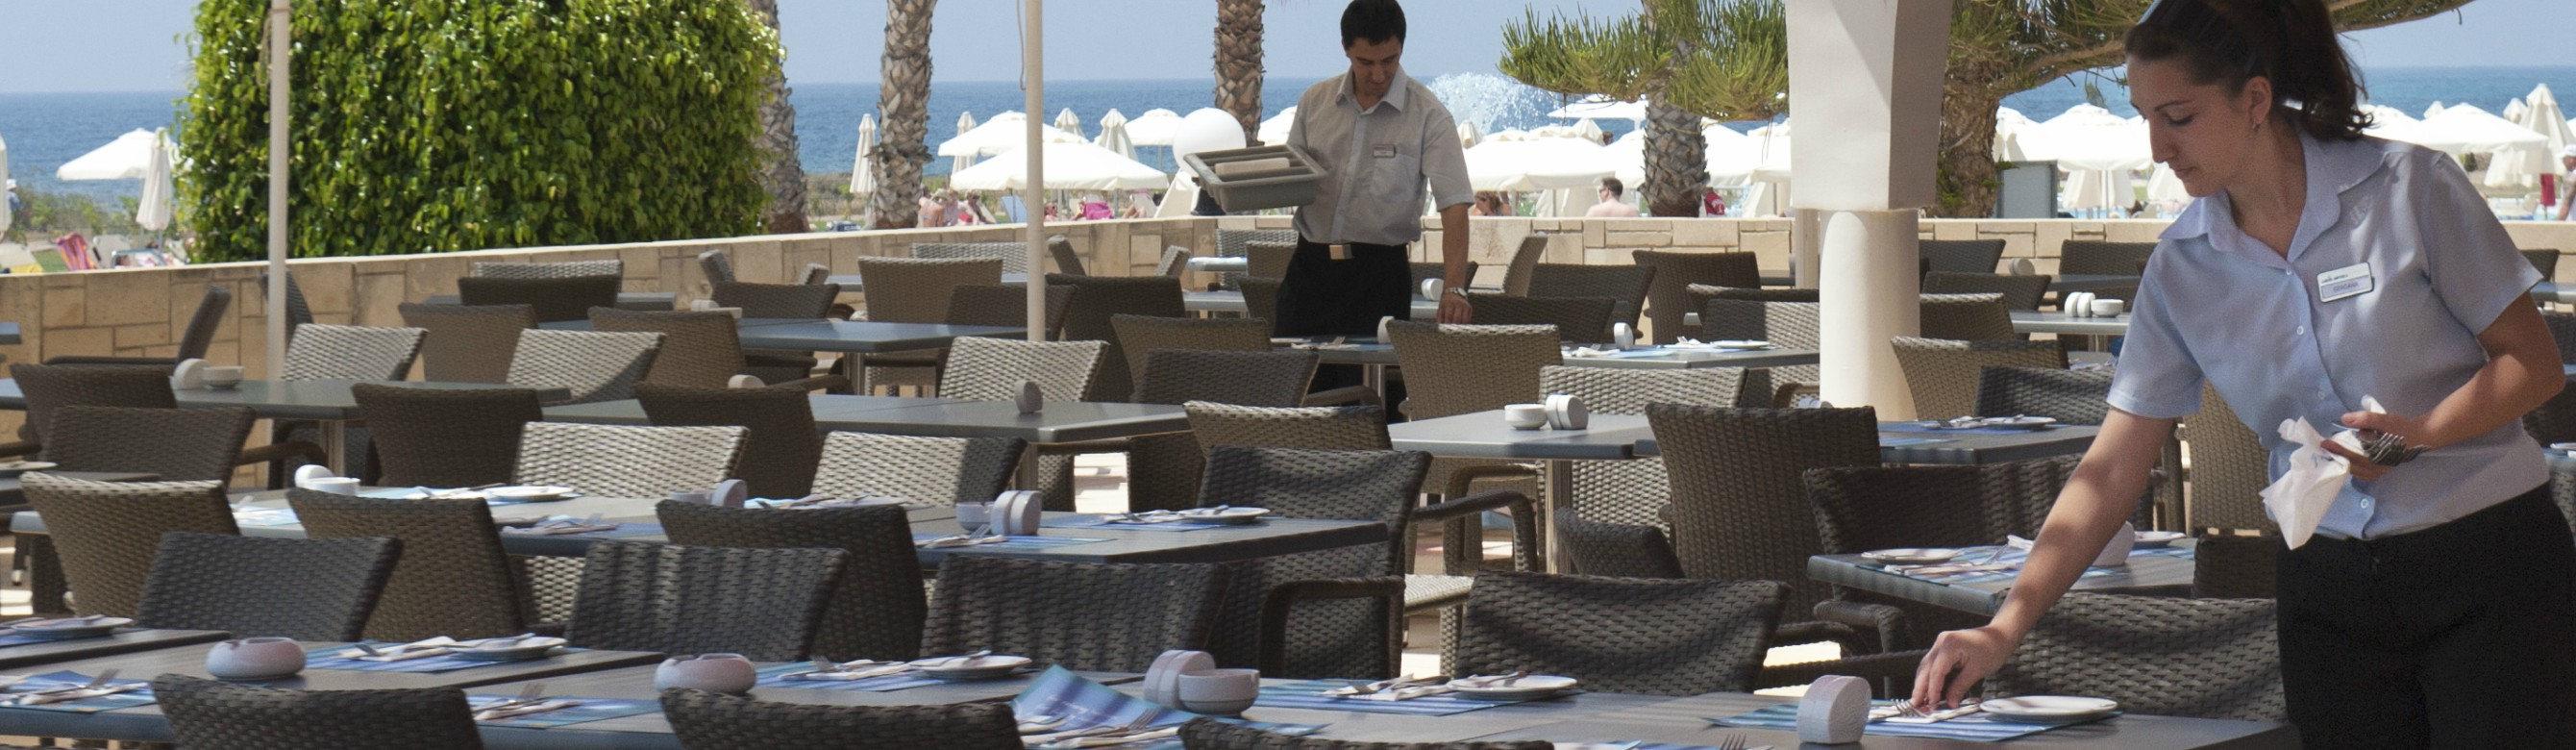 Louis_Phaethon_Beach_-_Outdoor_restautant_30001.jpg